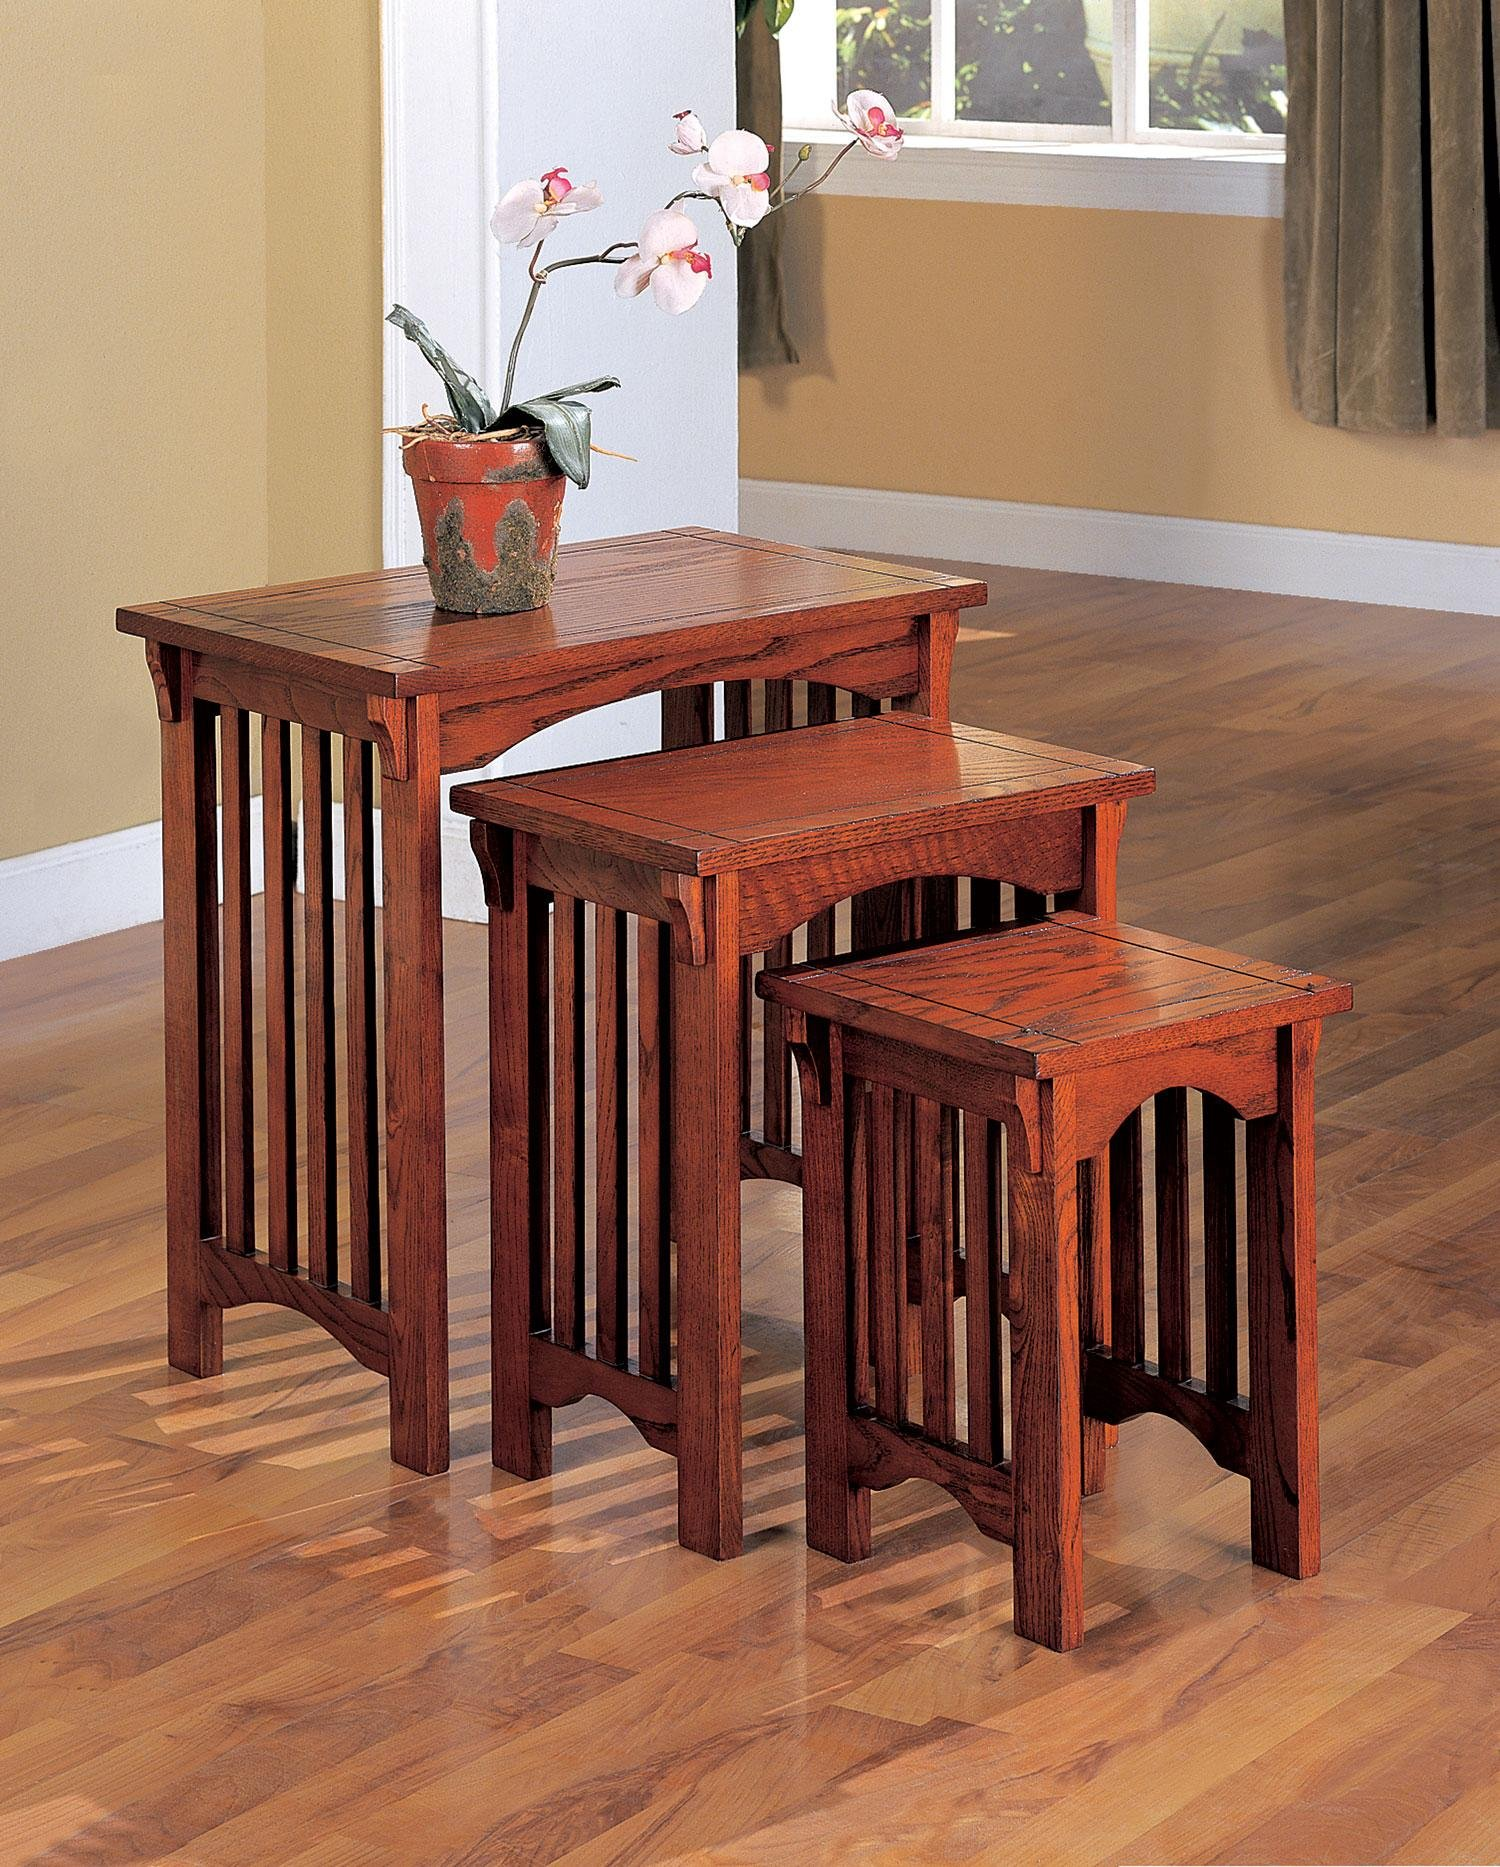 3-piece Nesting Table Set Warm Brown by Coaster Home Furnishings